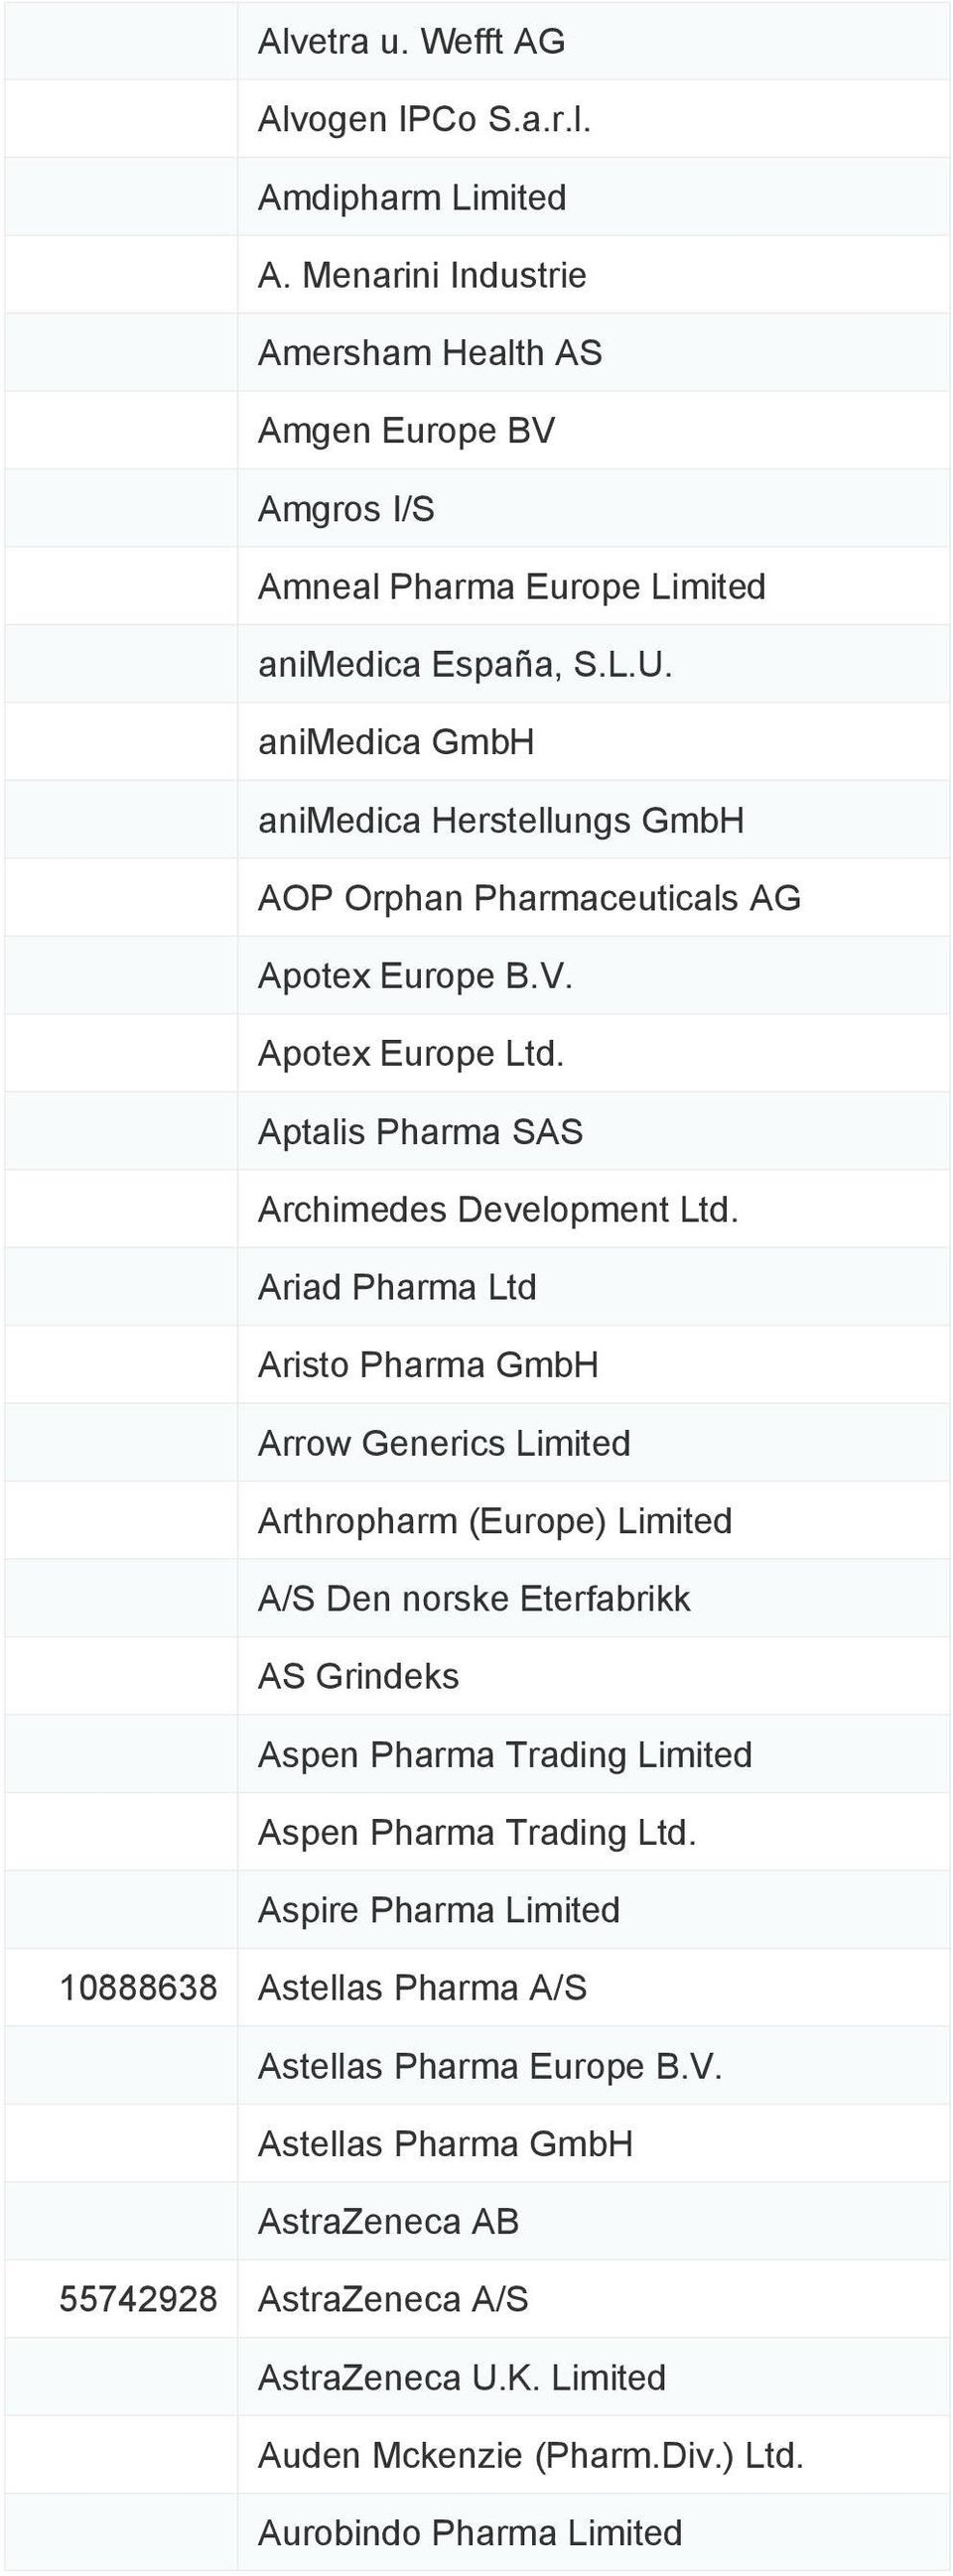 Ariad Pharma Ltd Aristo Pharma GmbH Arrow Generics Limited Arthropharm (Europe) Limited A/S Den norske Eterfabrikk AS Grindeks Aspen Pharma Trading Limited Aspen Pharma Trading Ltd.